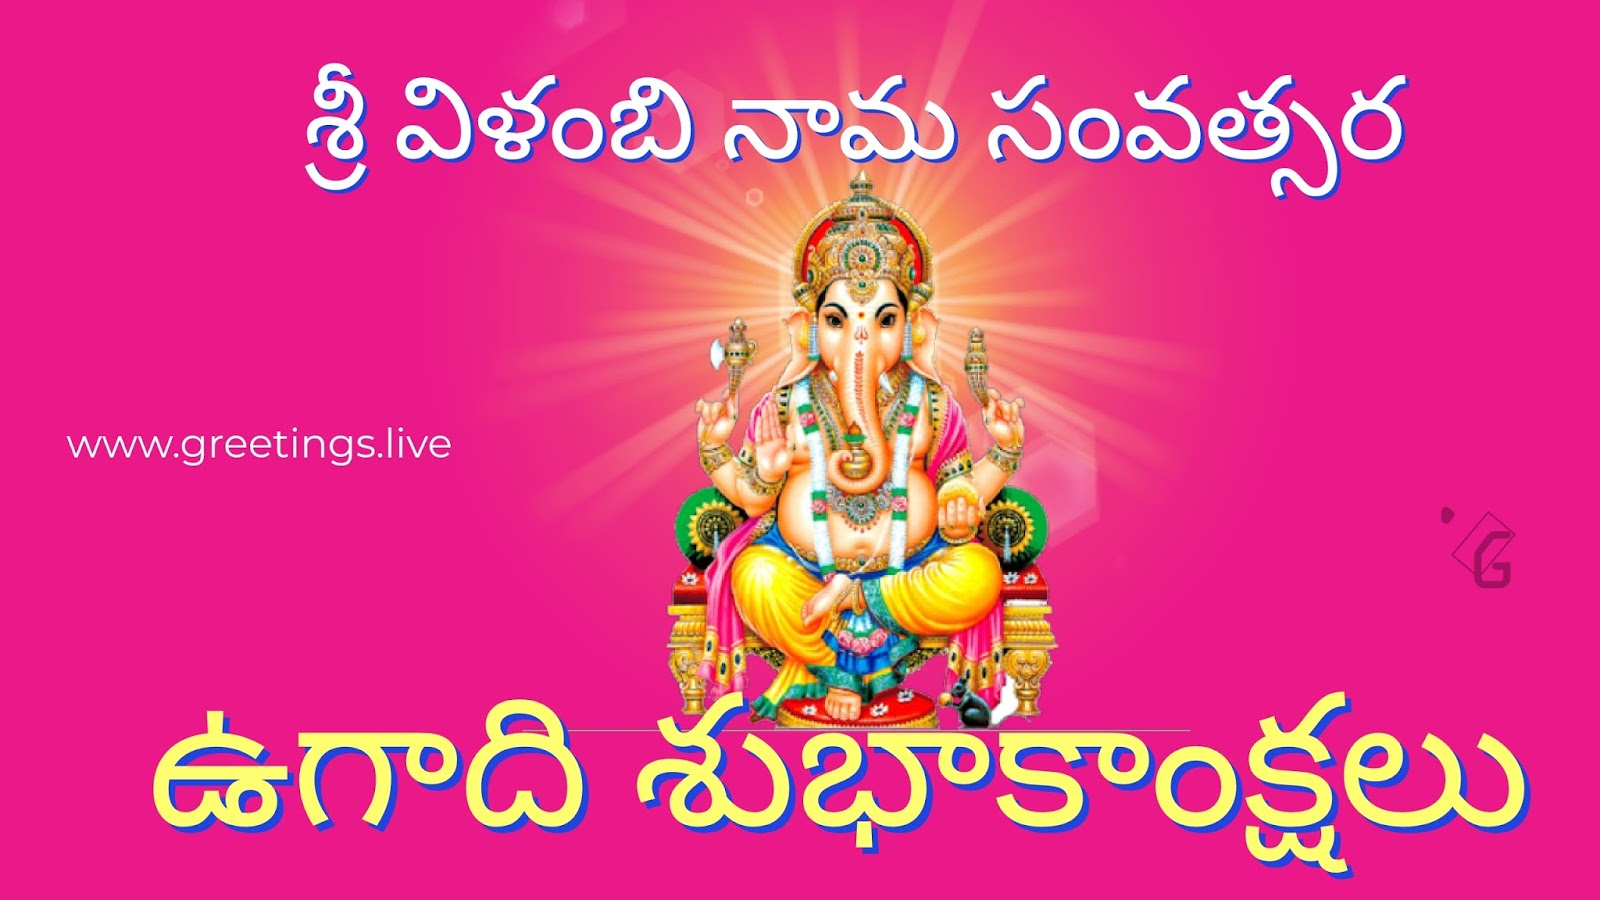 Greetingsve hd images love smile birthday wishes free download vinayaka swamy ugadi greetings in telugu 2018 kristyandbryce Images